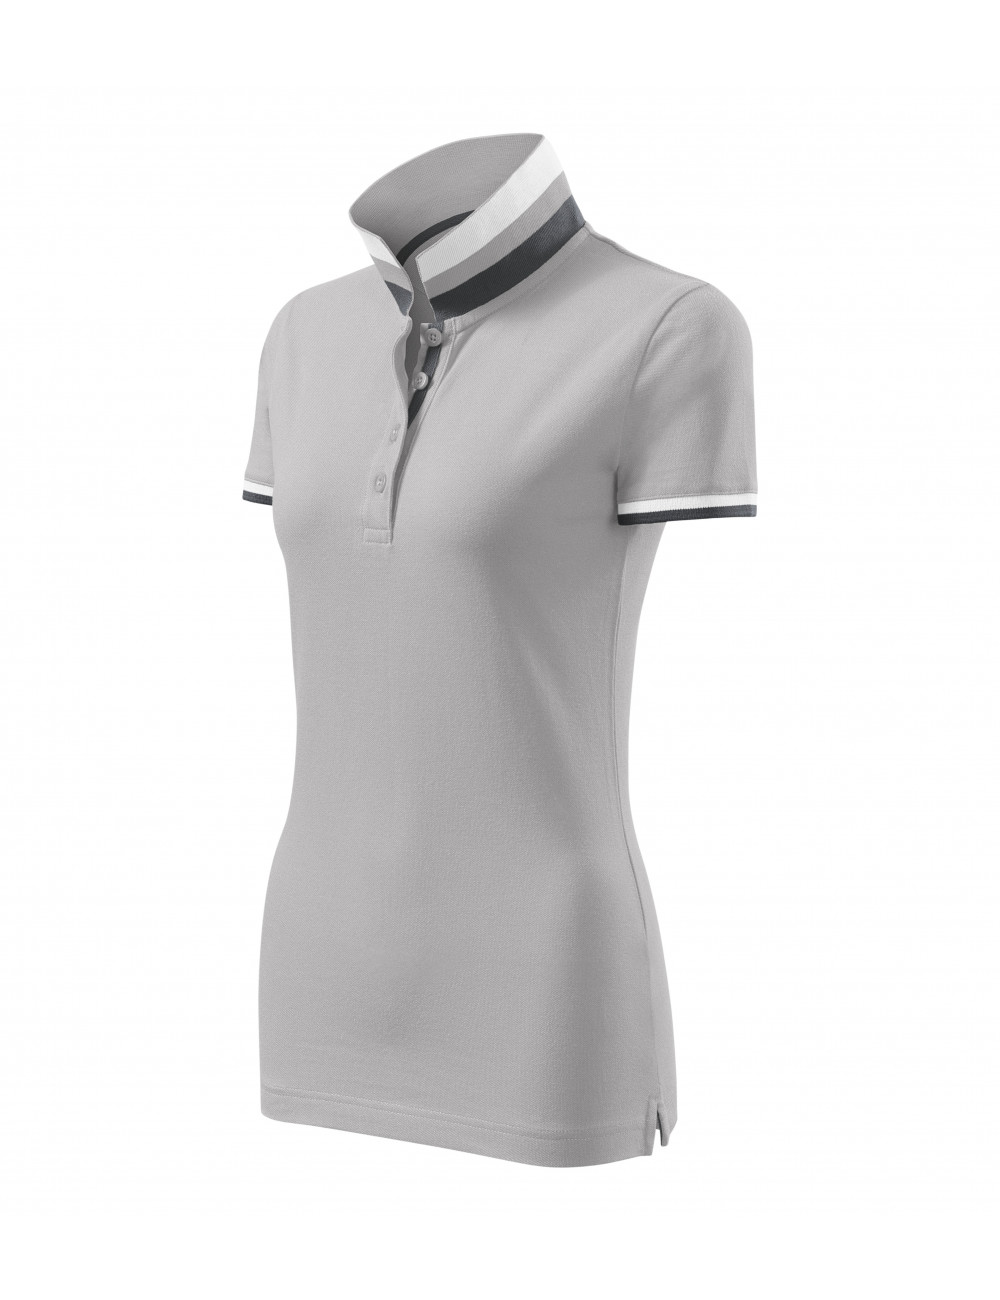 Adler MALFINIPREMIUM Koszulka polo damska Collar Up 257 silver gray